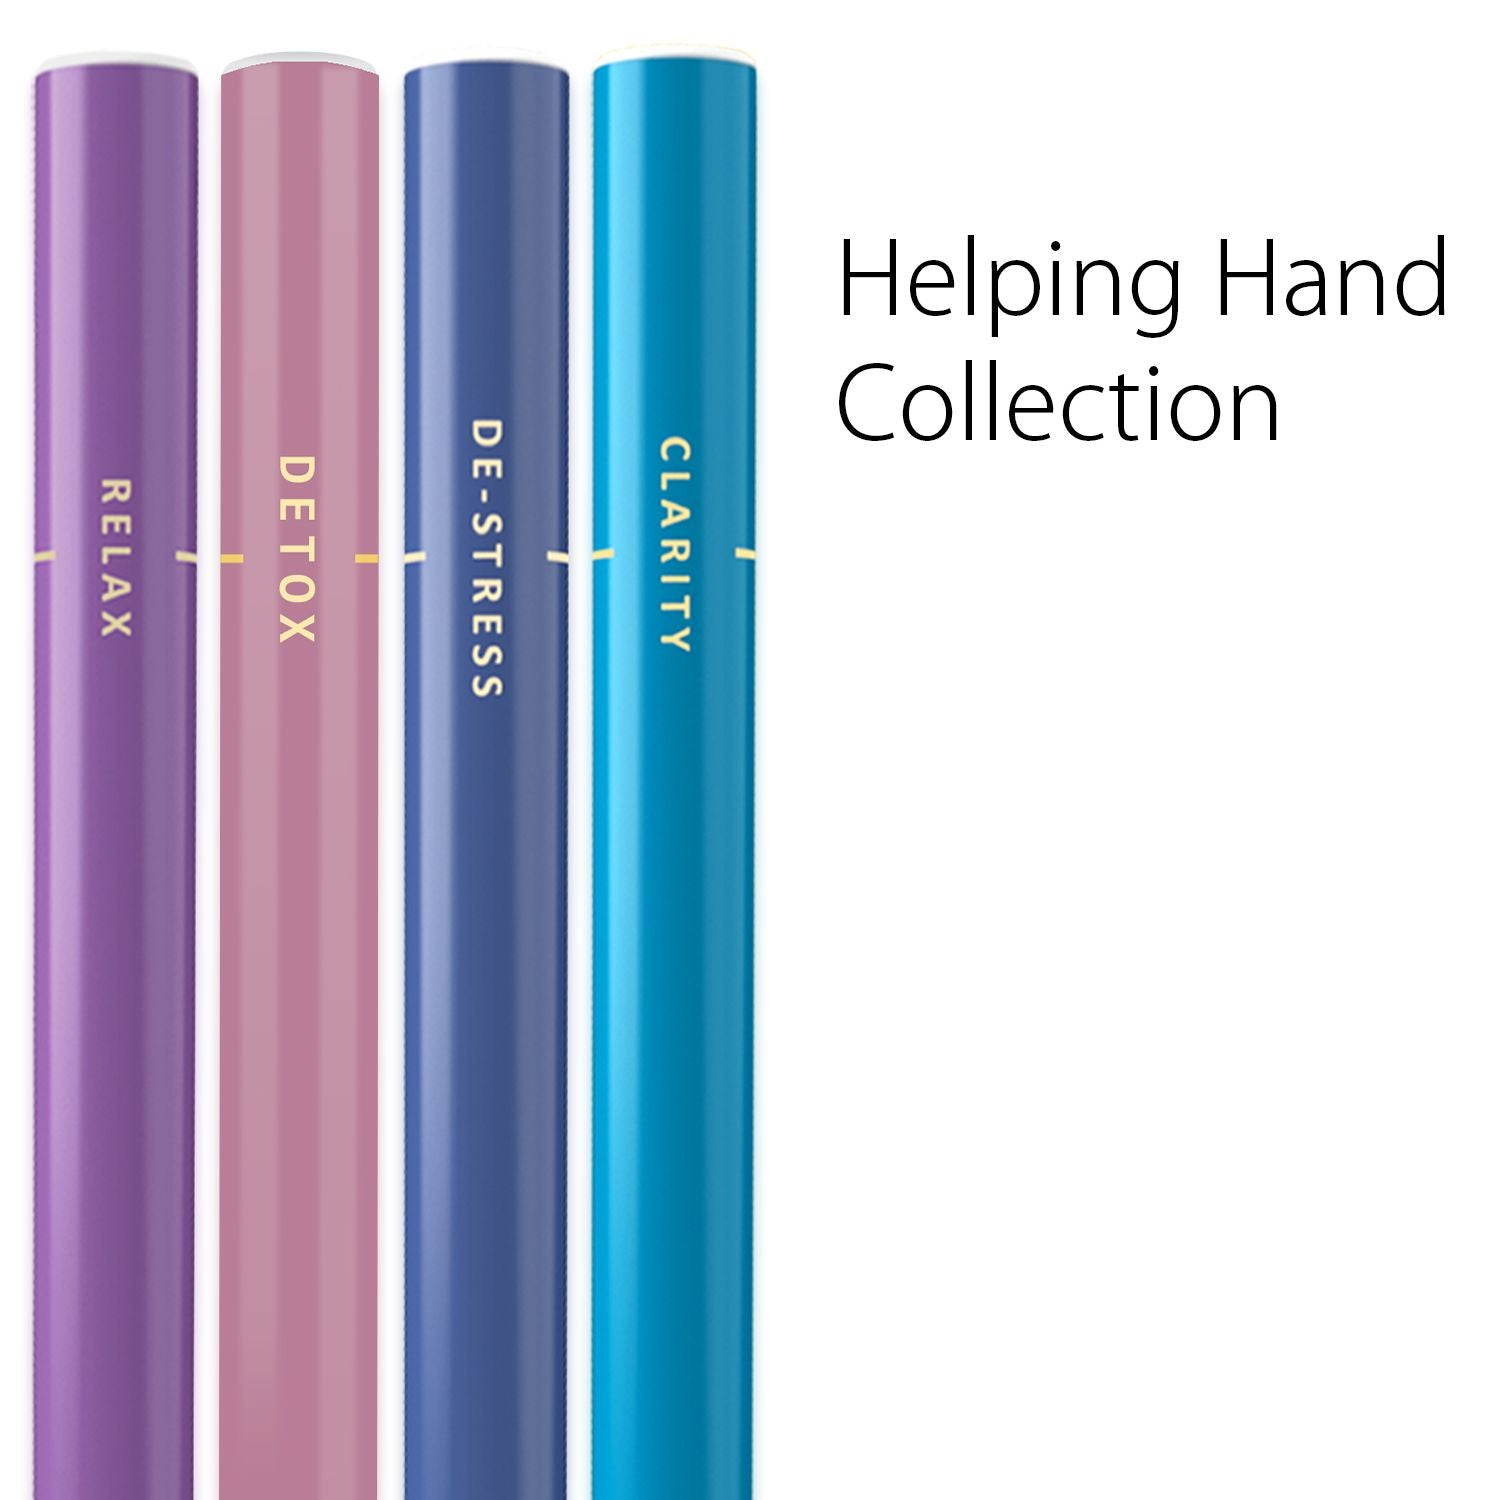 Helping Hand Collection